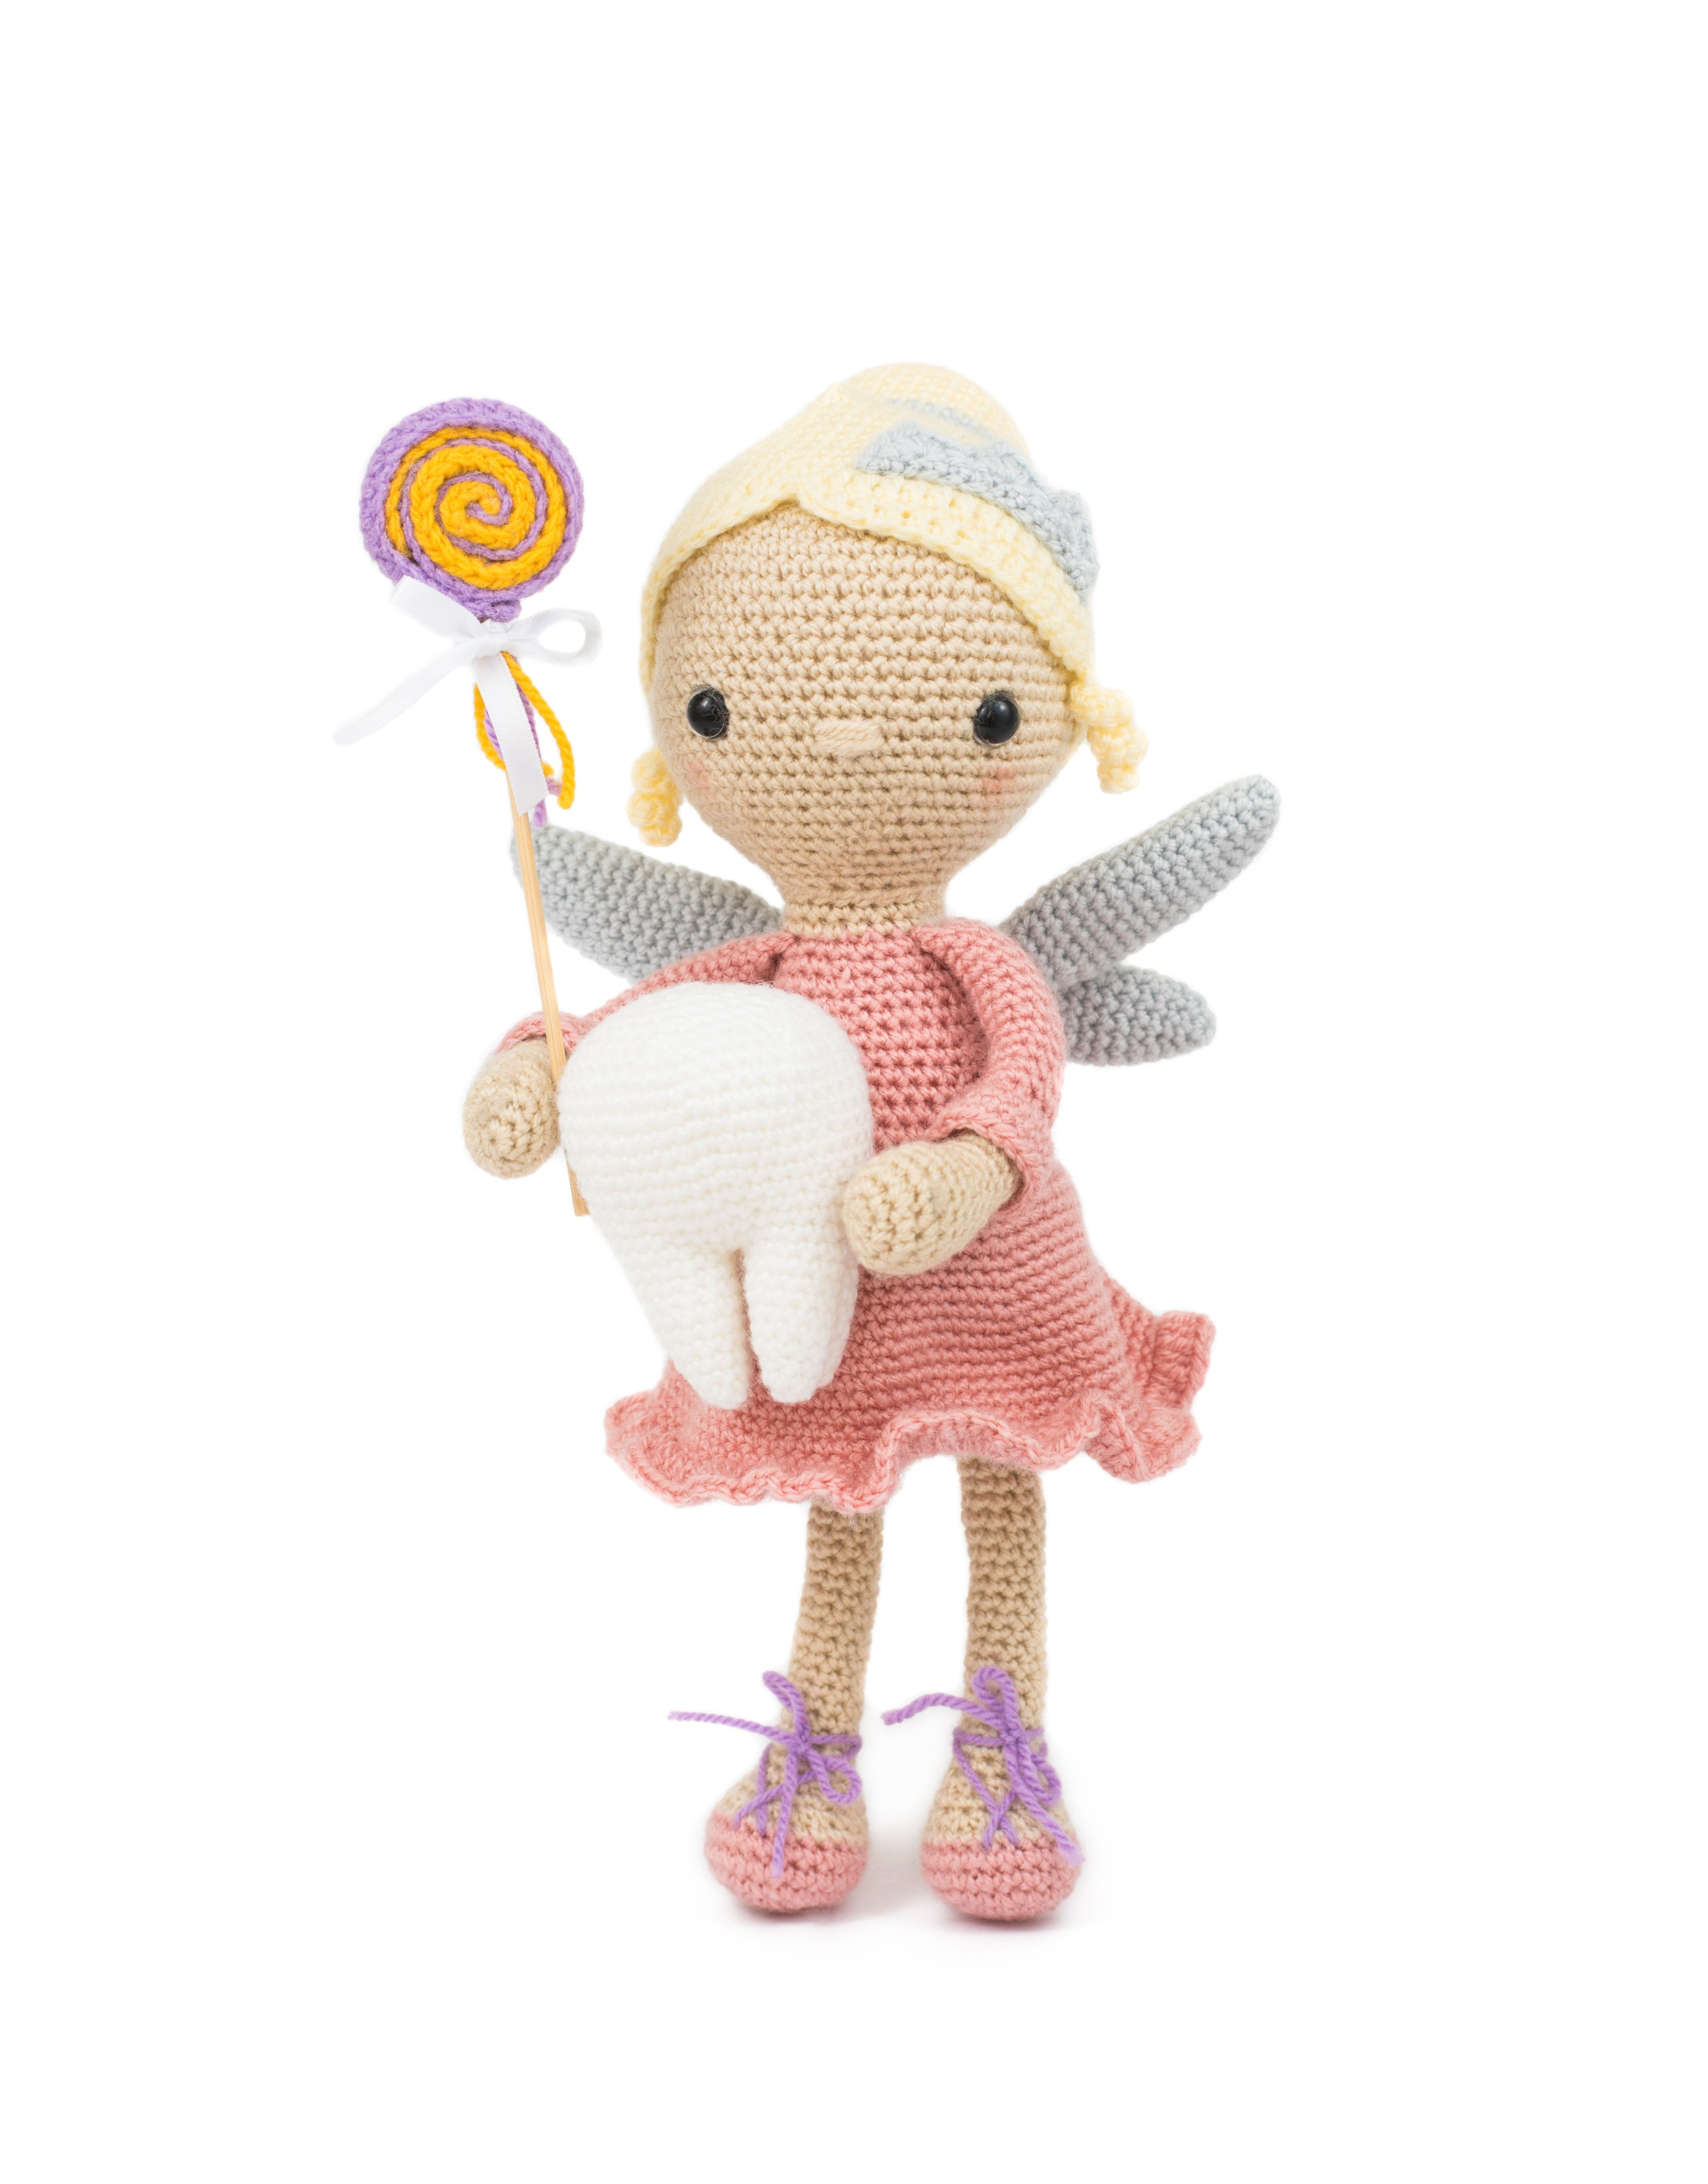 Tooth fairy crochet pattern by Hello Yellow Yarn, part of the book ...